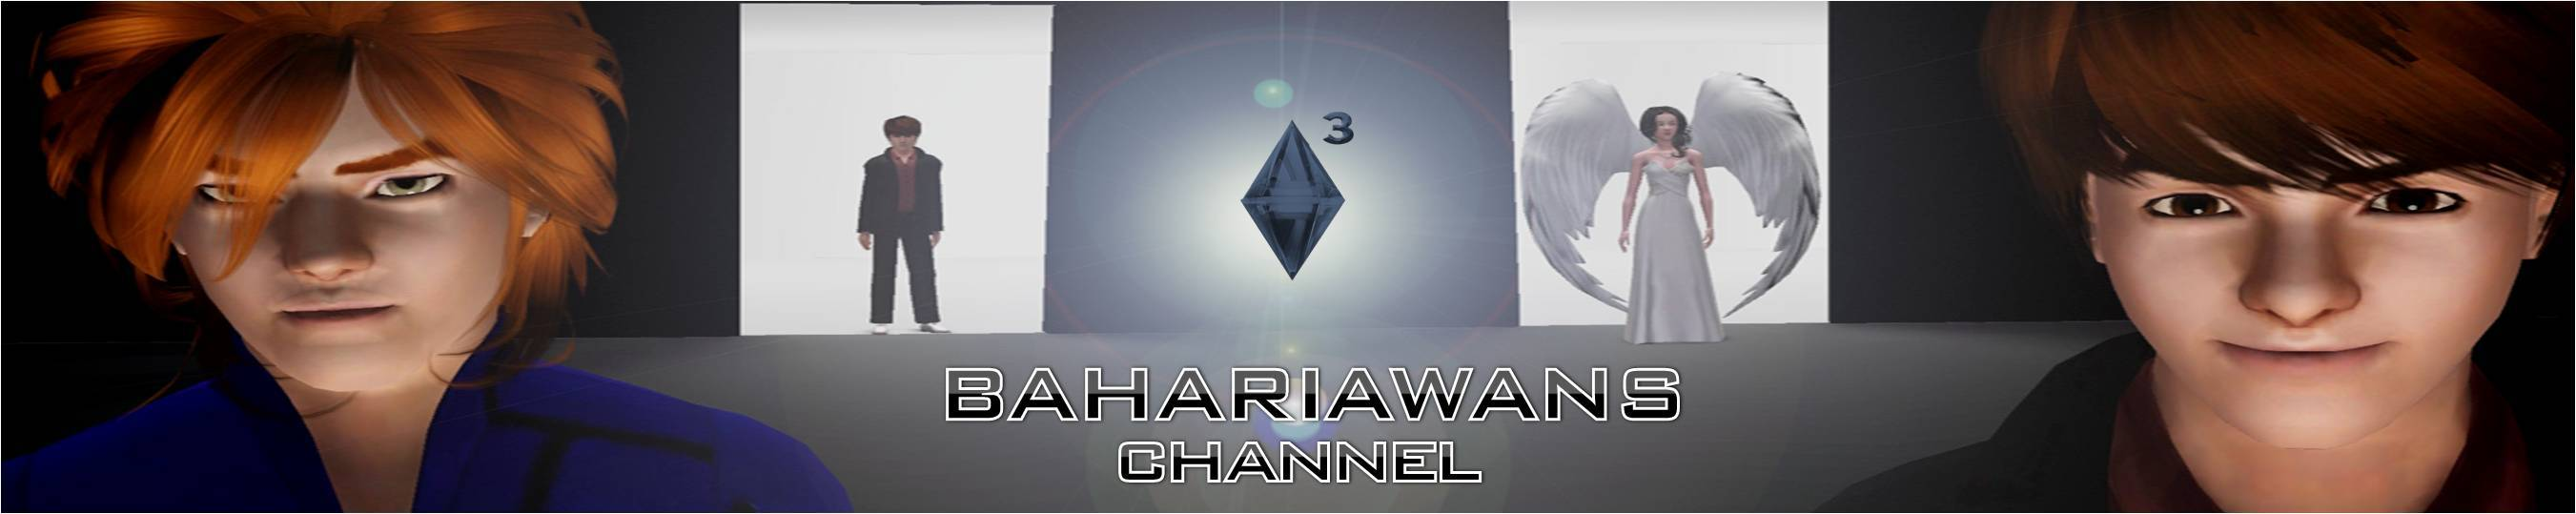 Bahariawans Channel